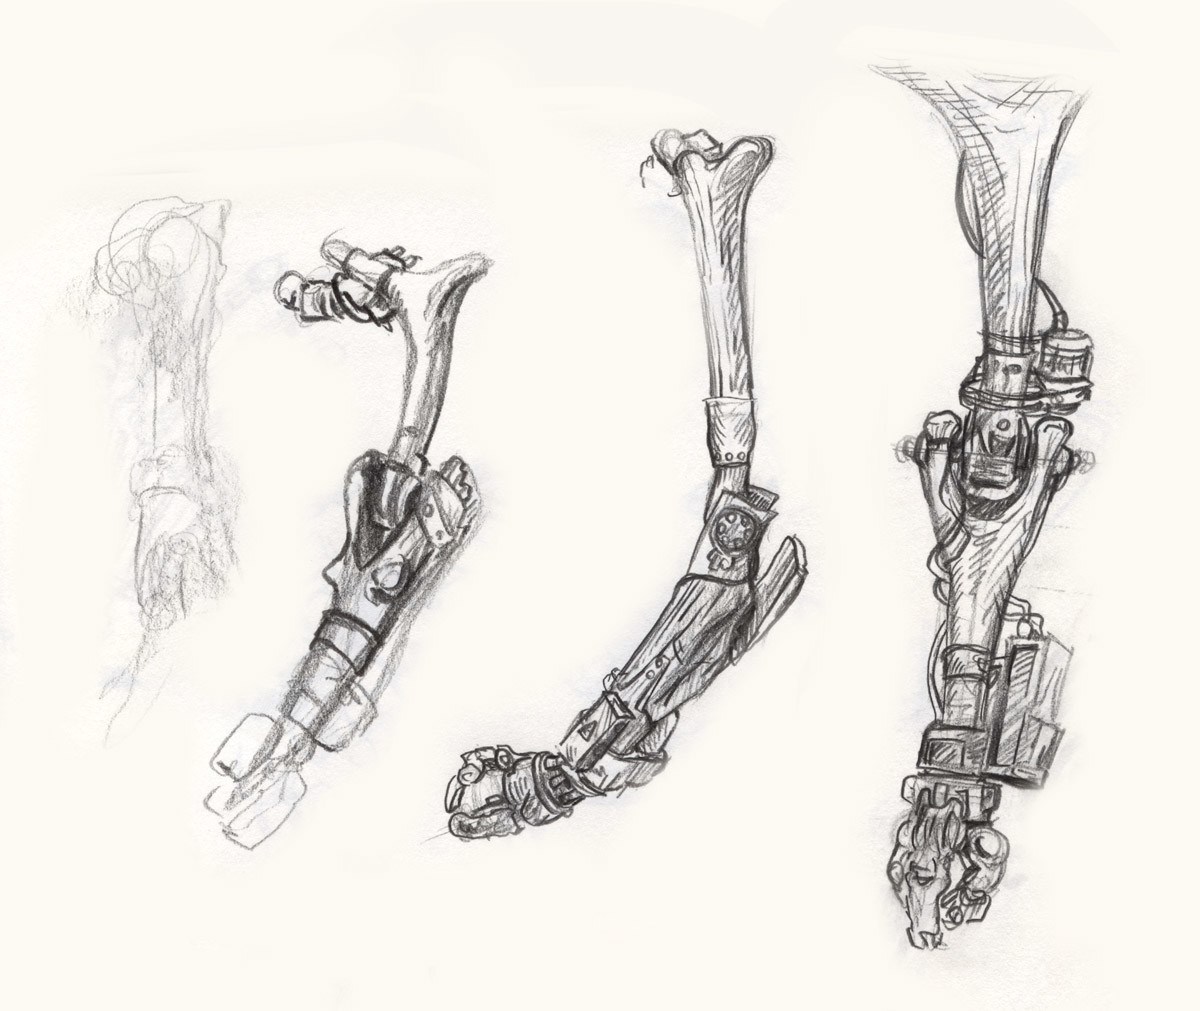 Dirk wachsmuth 08 arm concepts1cropped